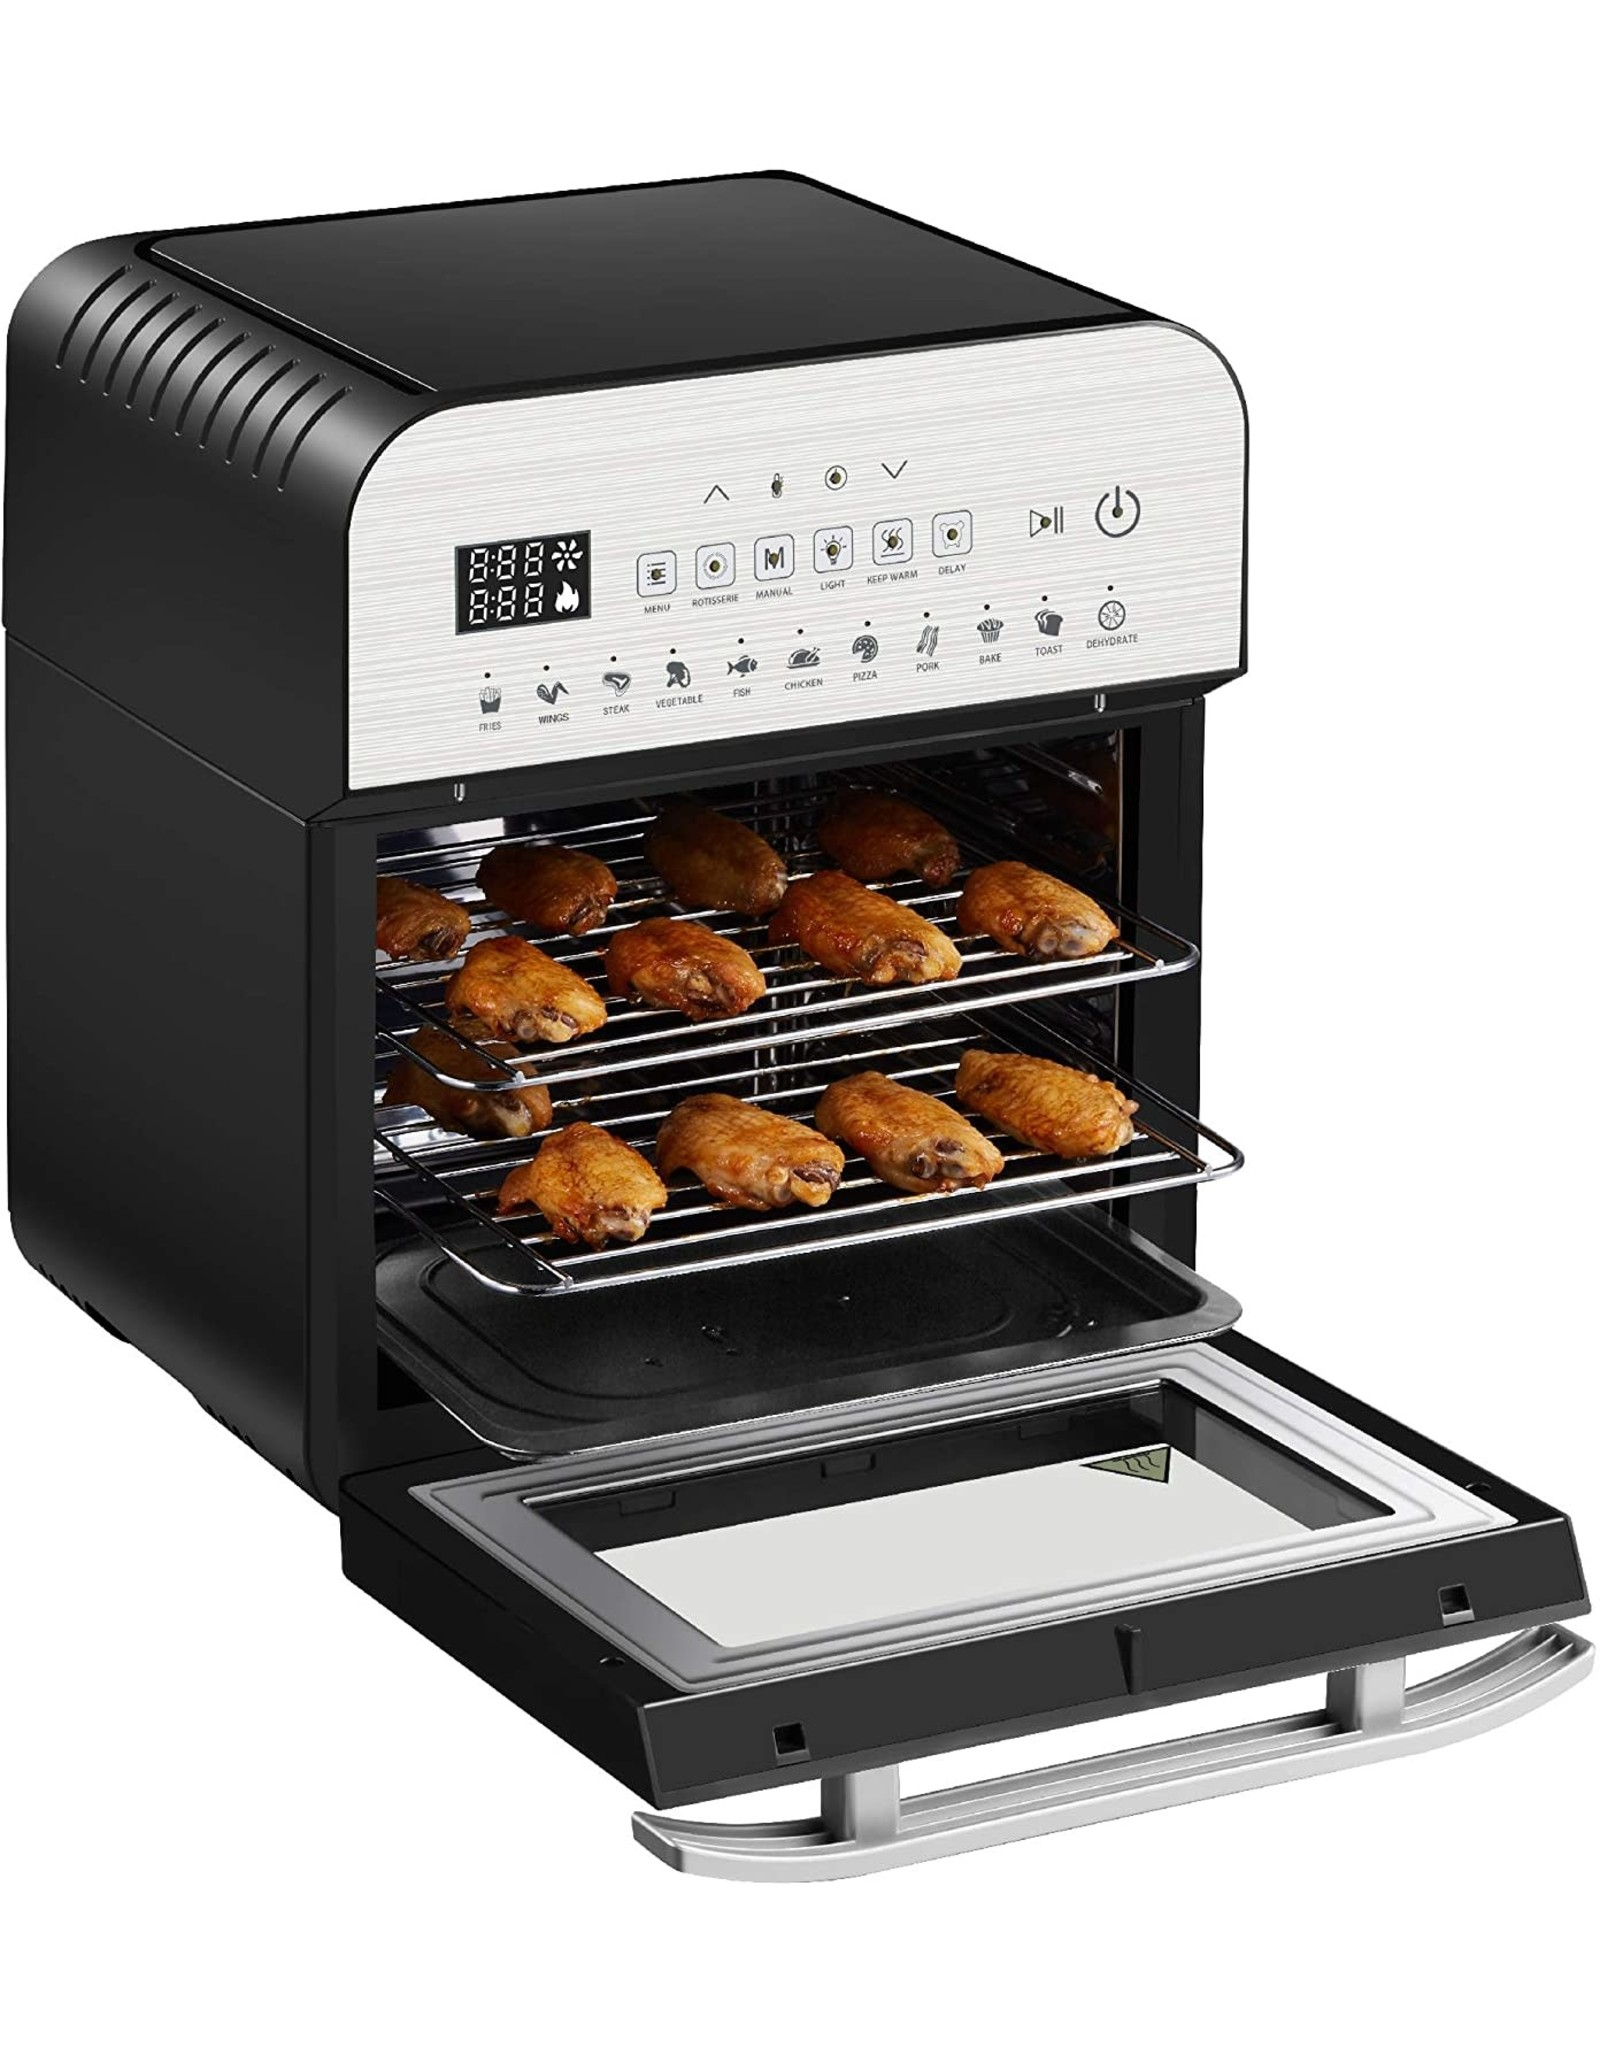 GoWISE USA GoWISE USA GW44804 Air Fryer Toaster Oven with Rotisserie + Dehydrator and 11 Accessories + 50 Recipes, Ultra (Silver/Black), 12.7 quart